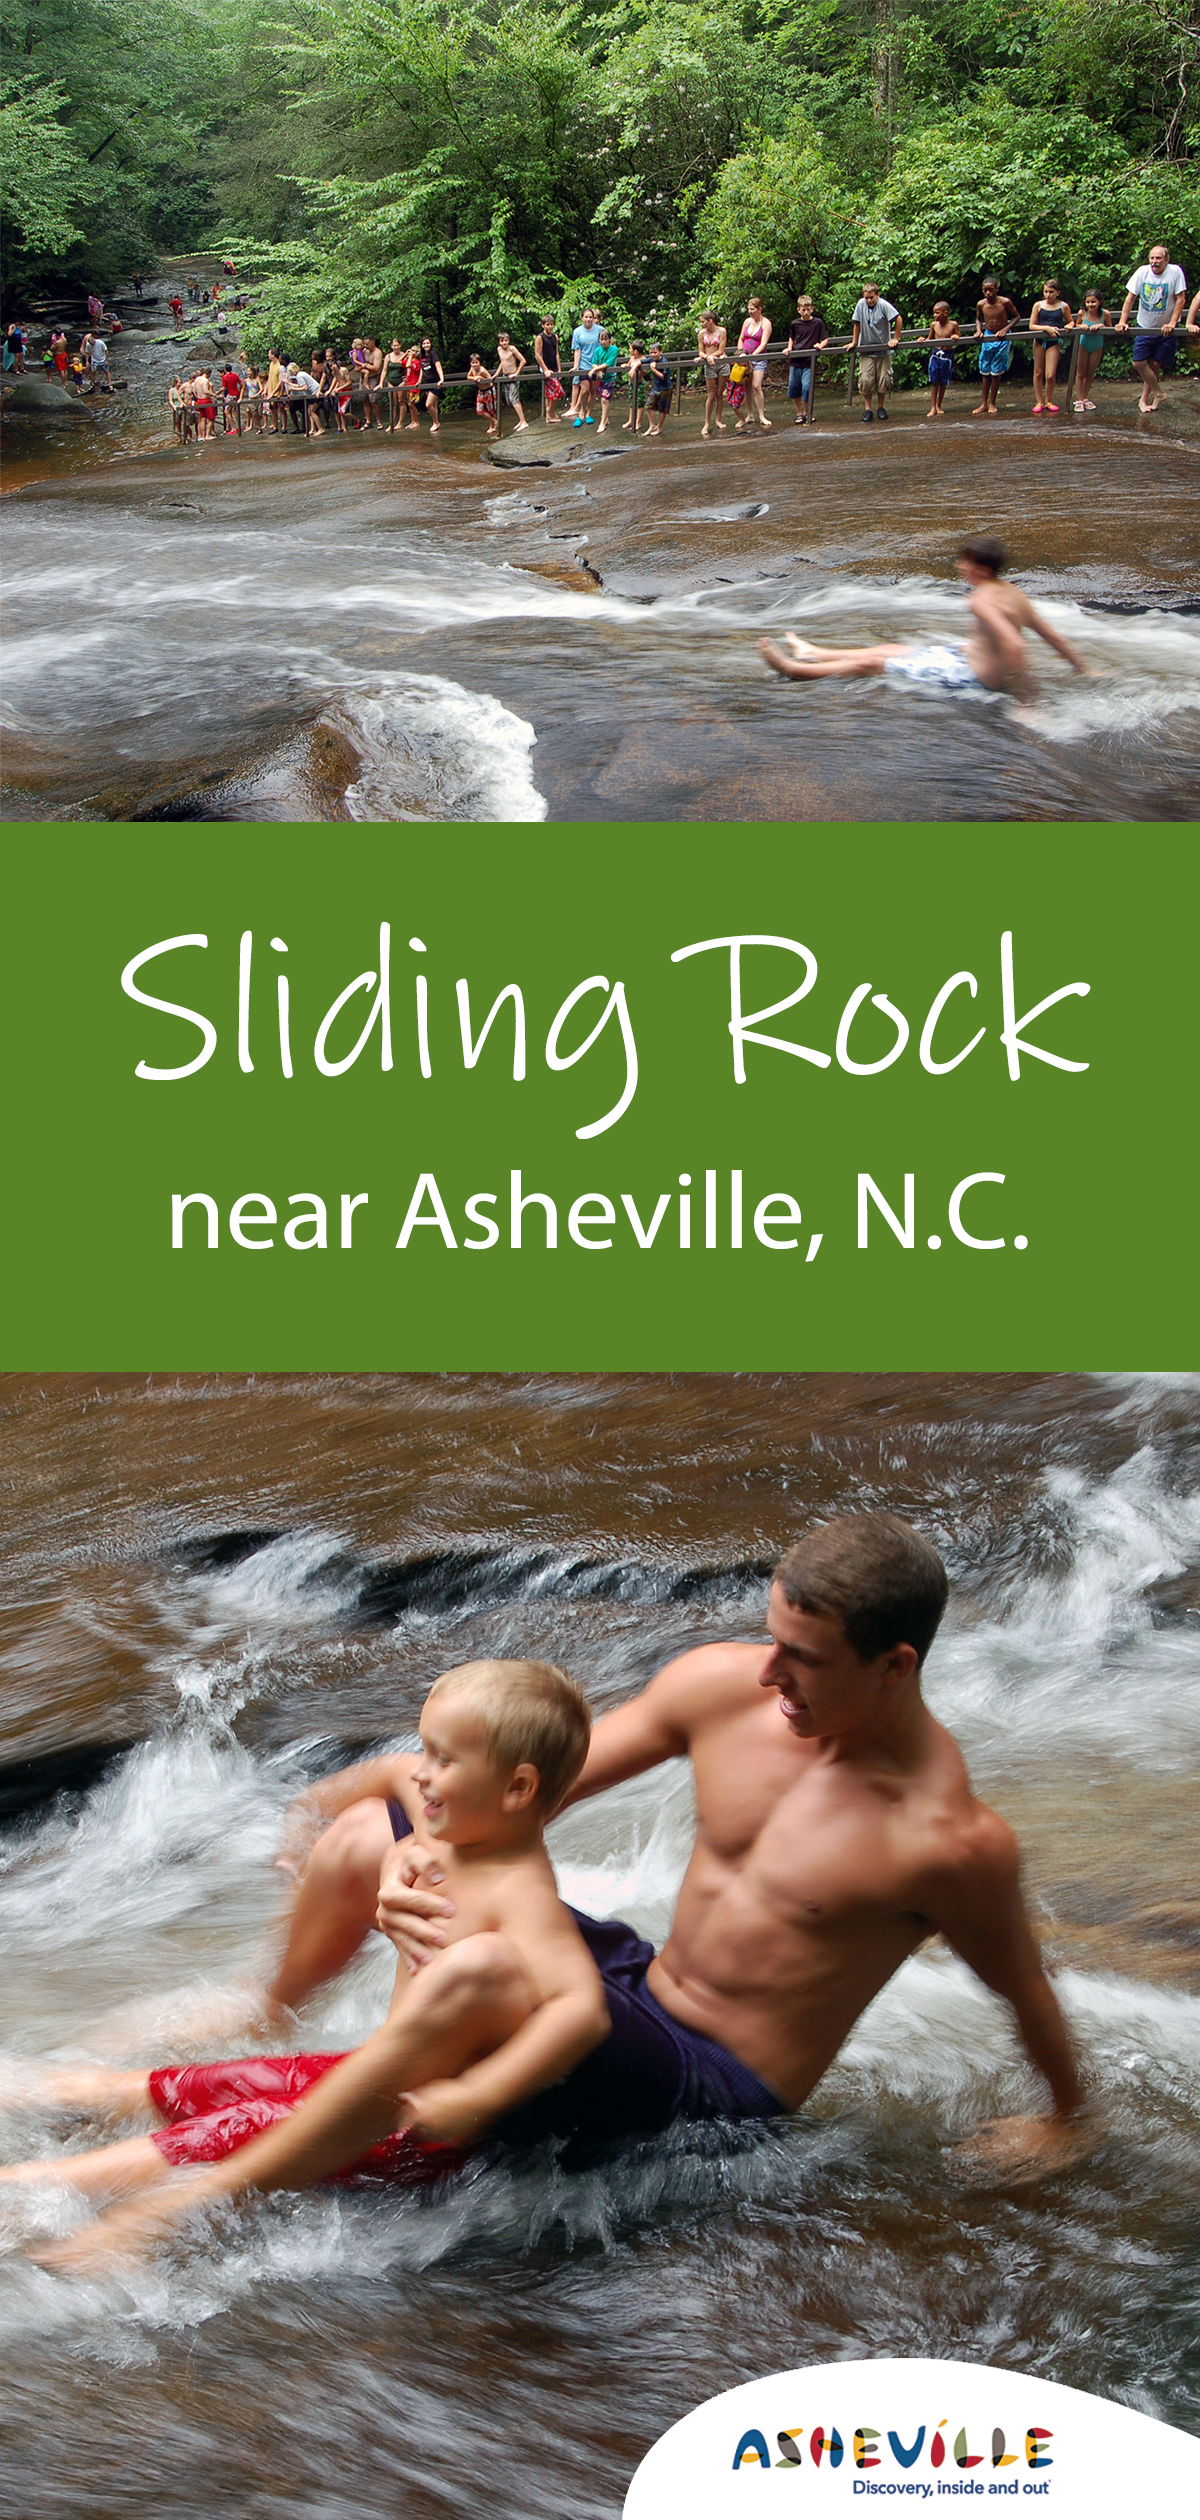 Sliding Rock near Asheville, N.C.